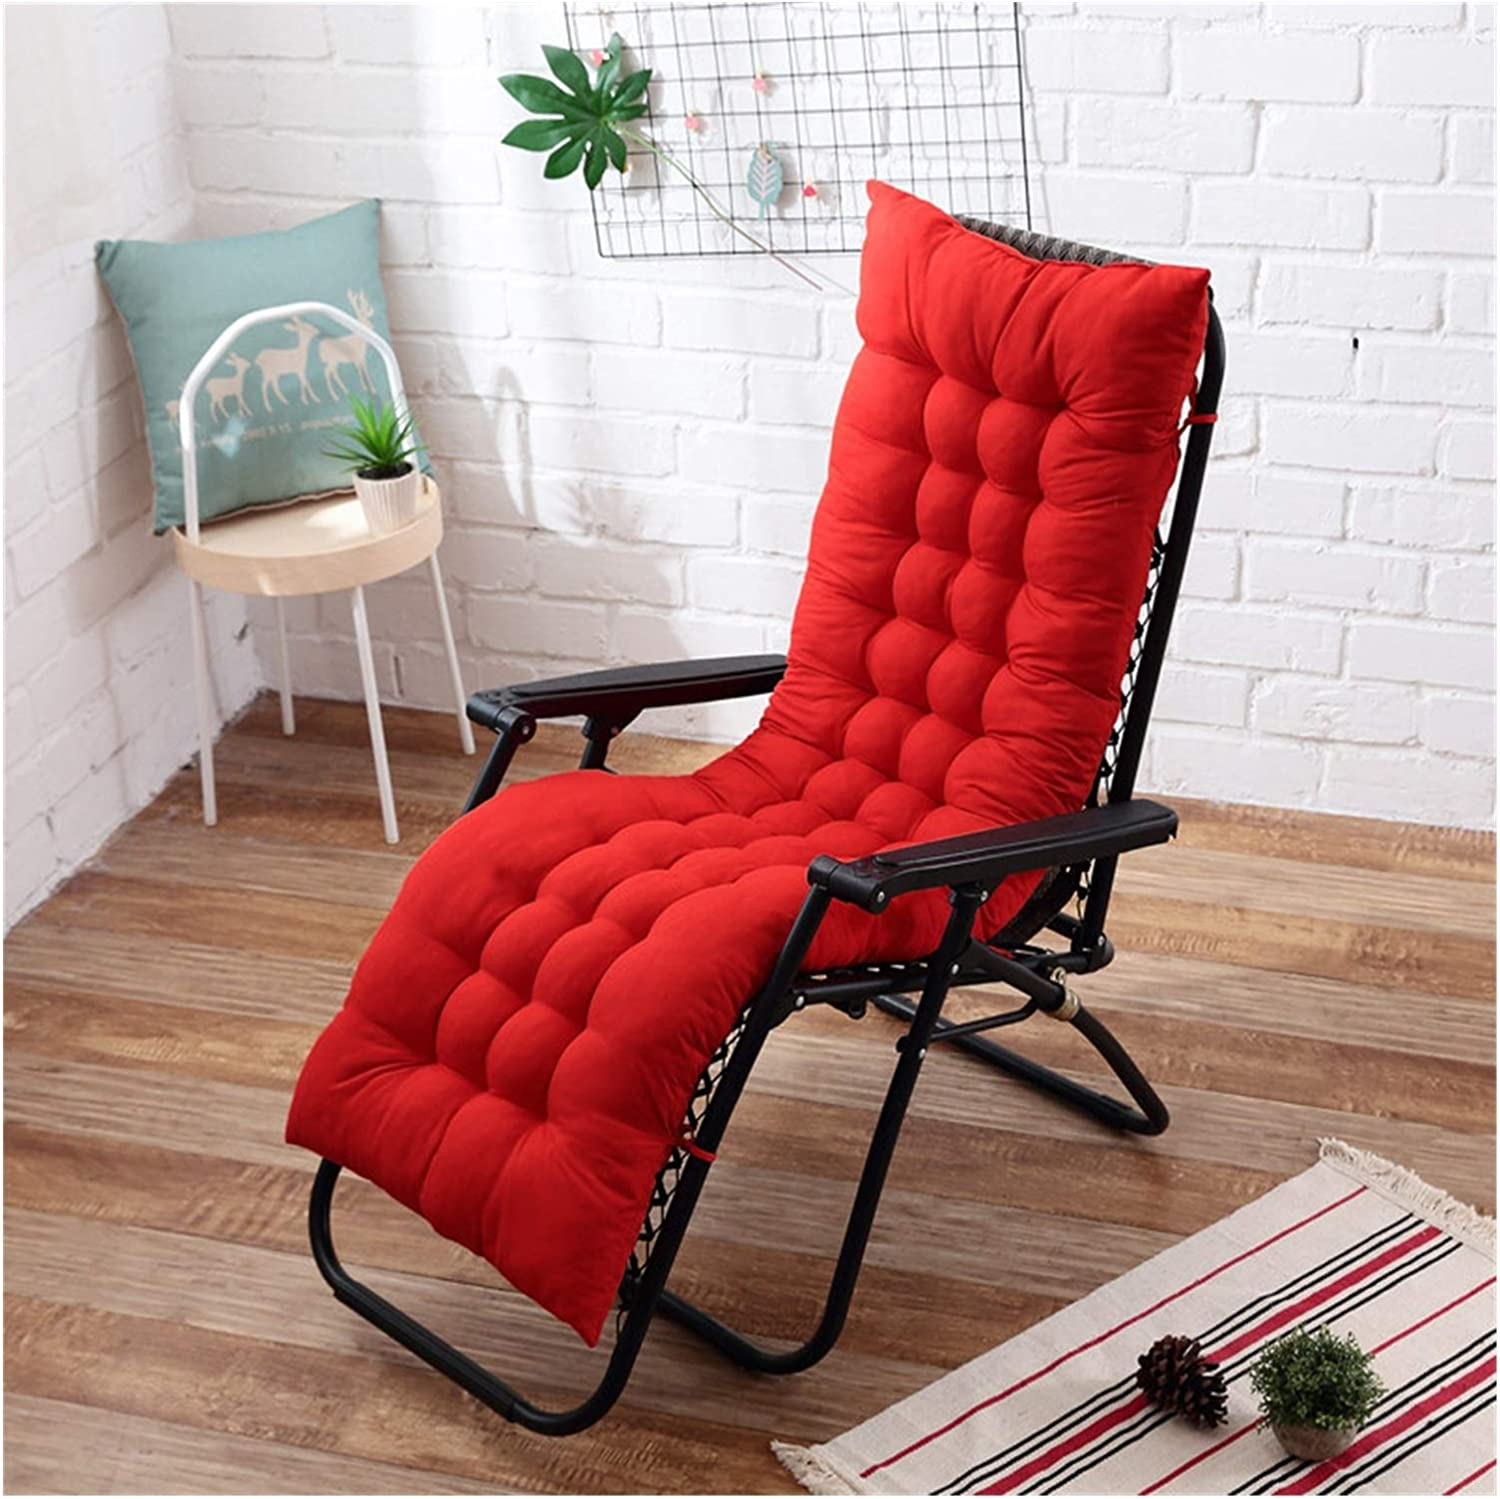 ZCPCS Solid Color Cushion Soft Office Sale special price Chair wholesale Comfortable Cus Seat